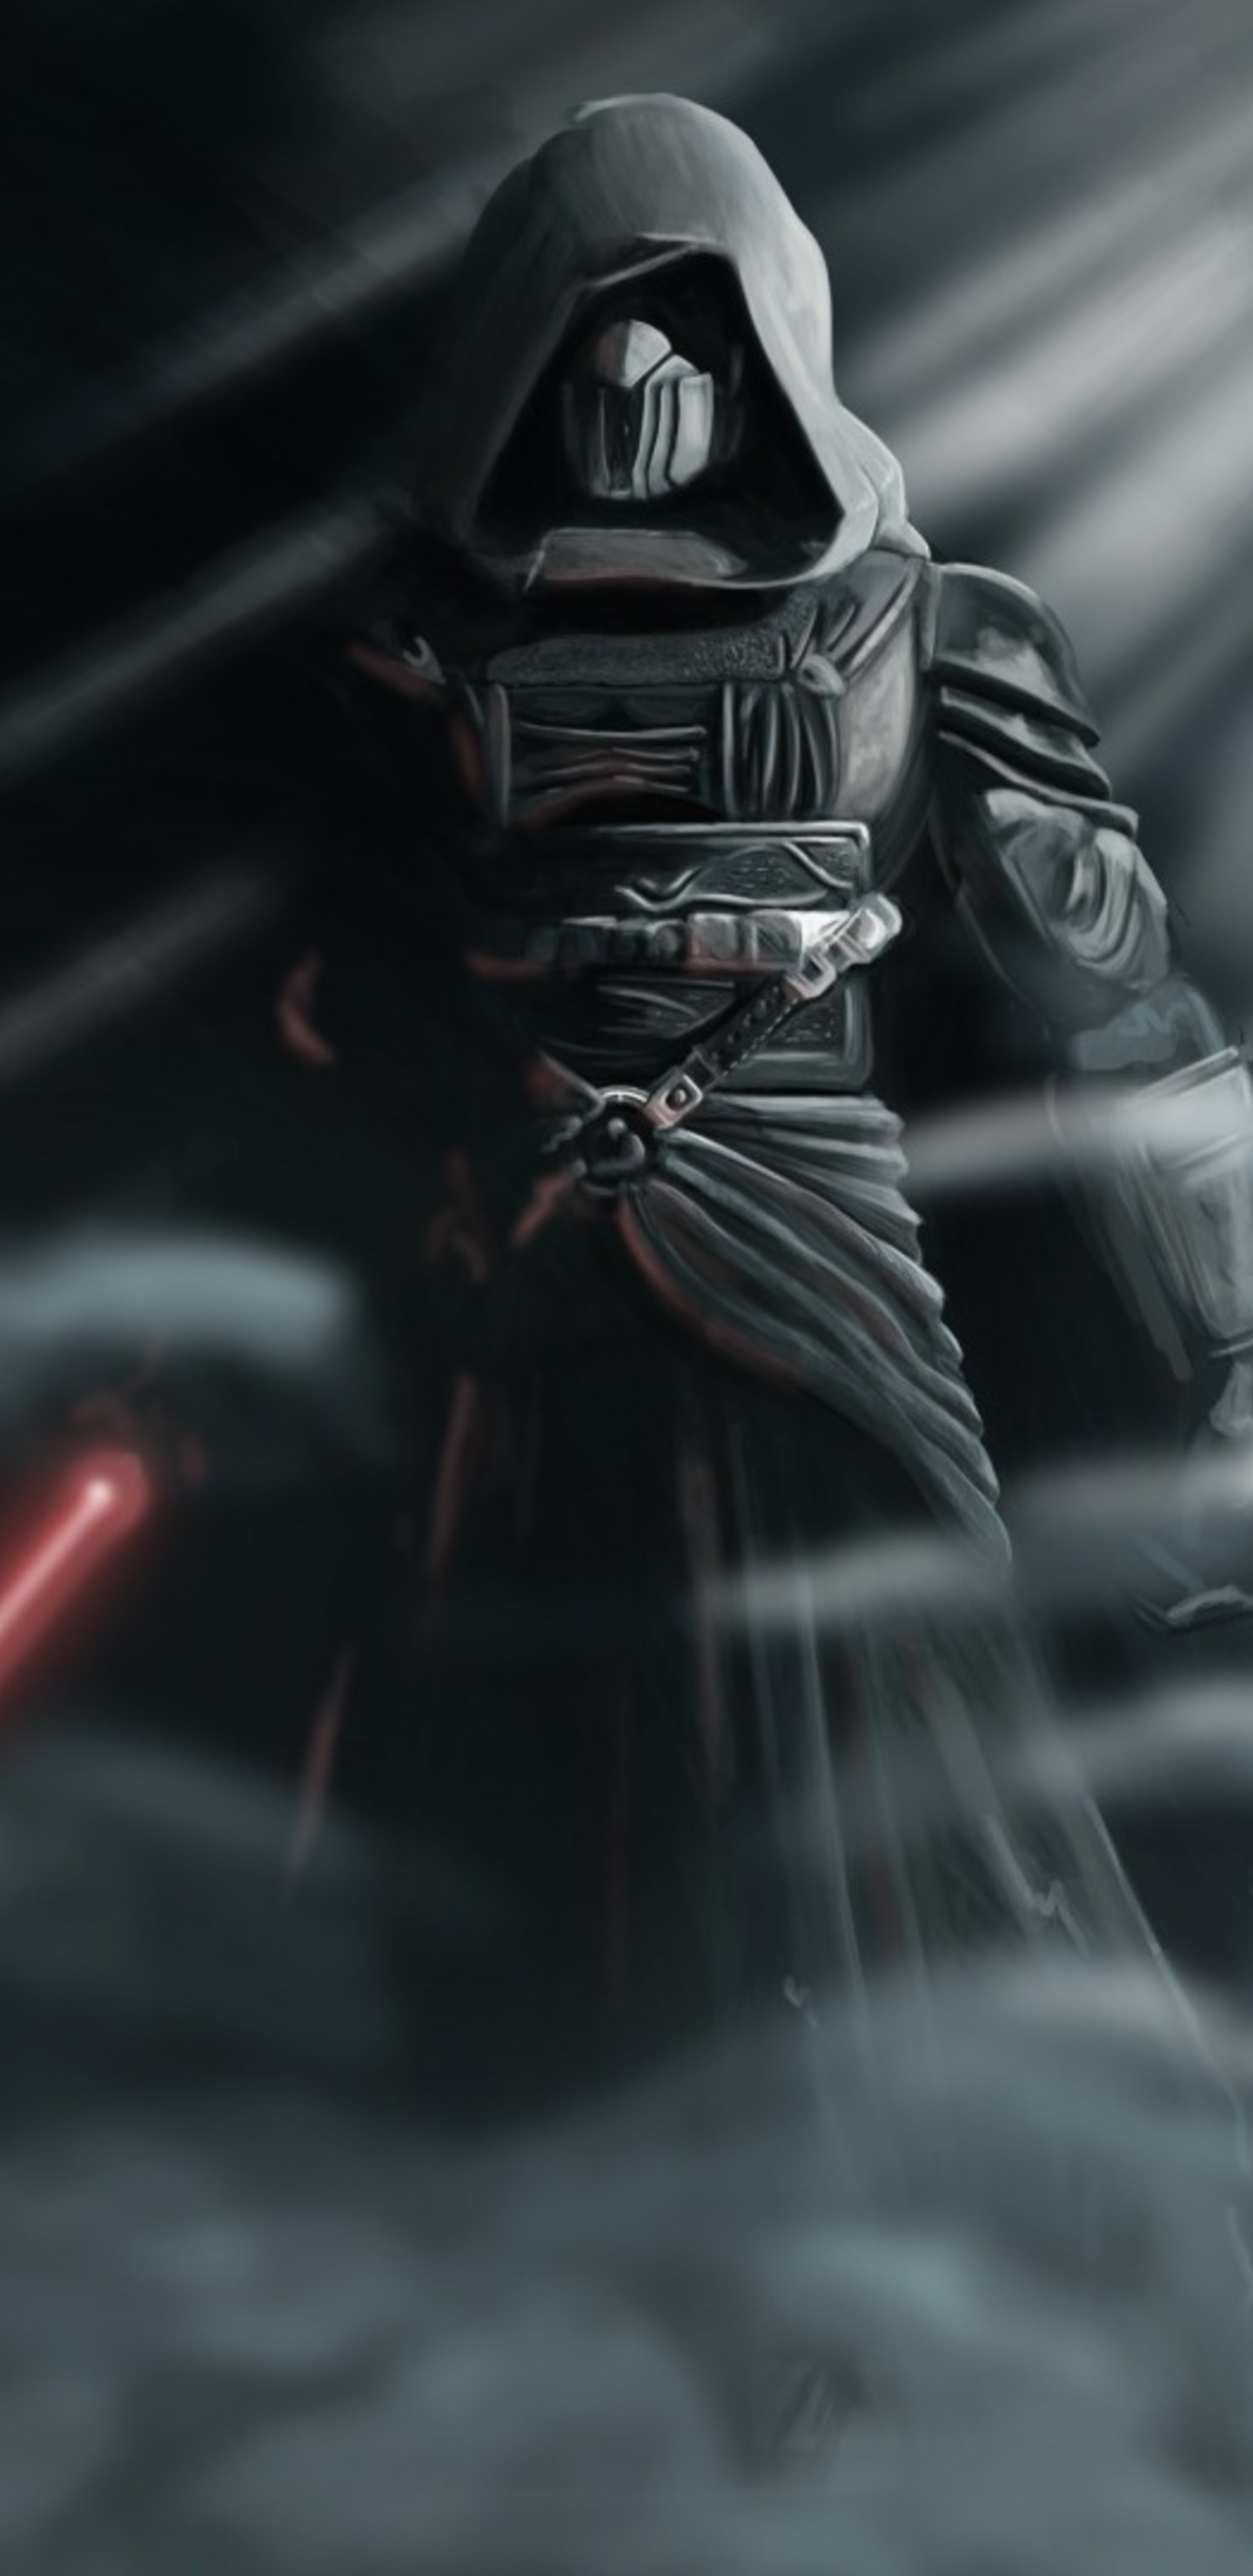 darth revan star wars with lightsaber o0